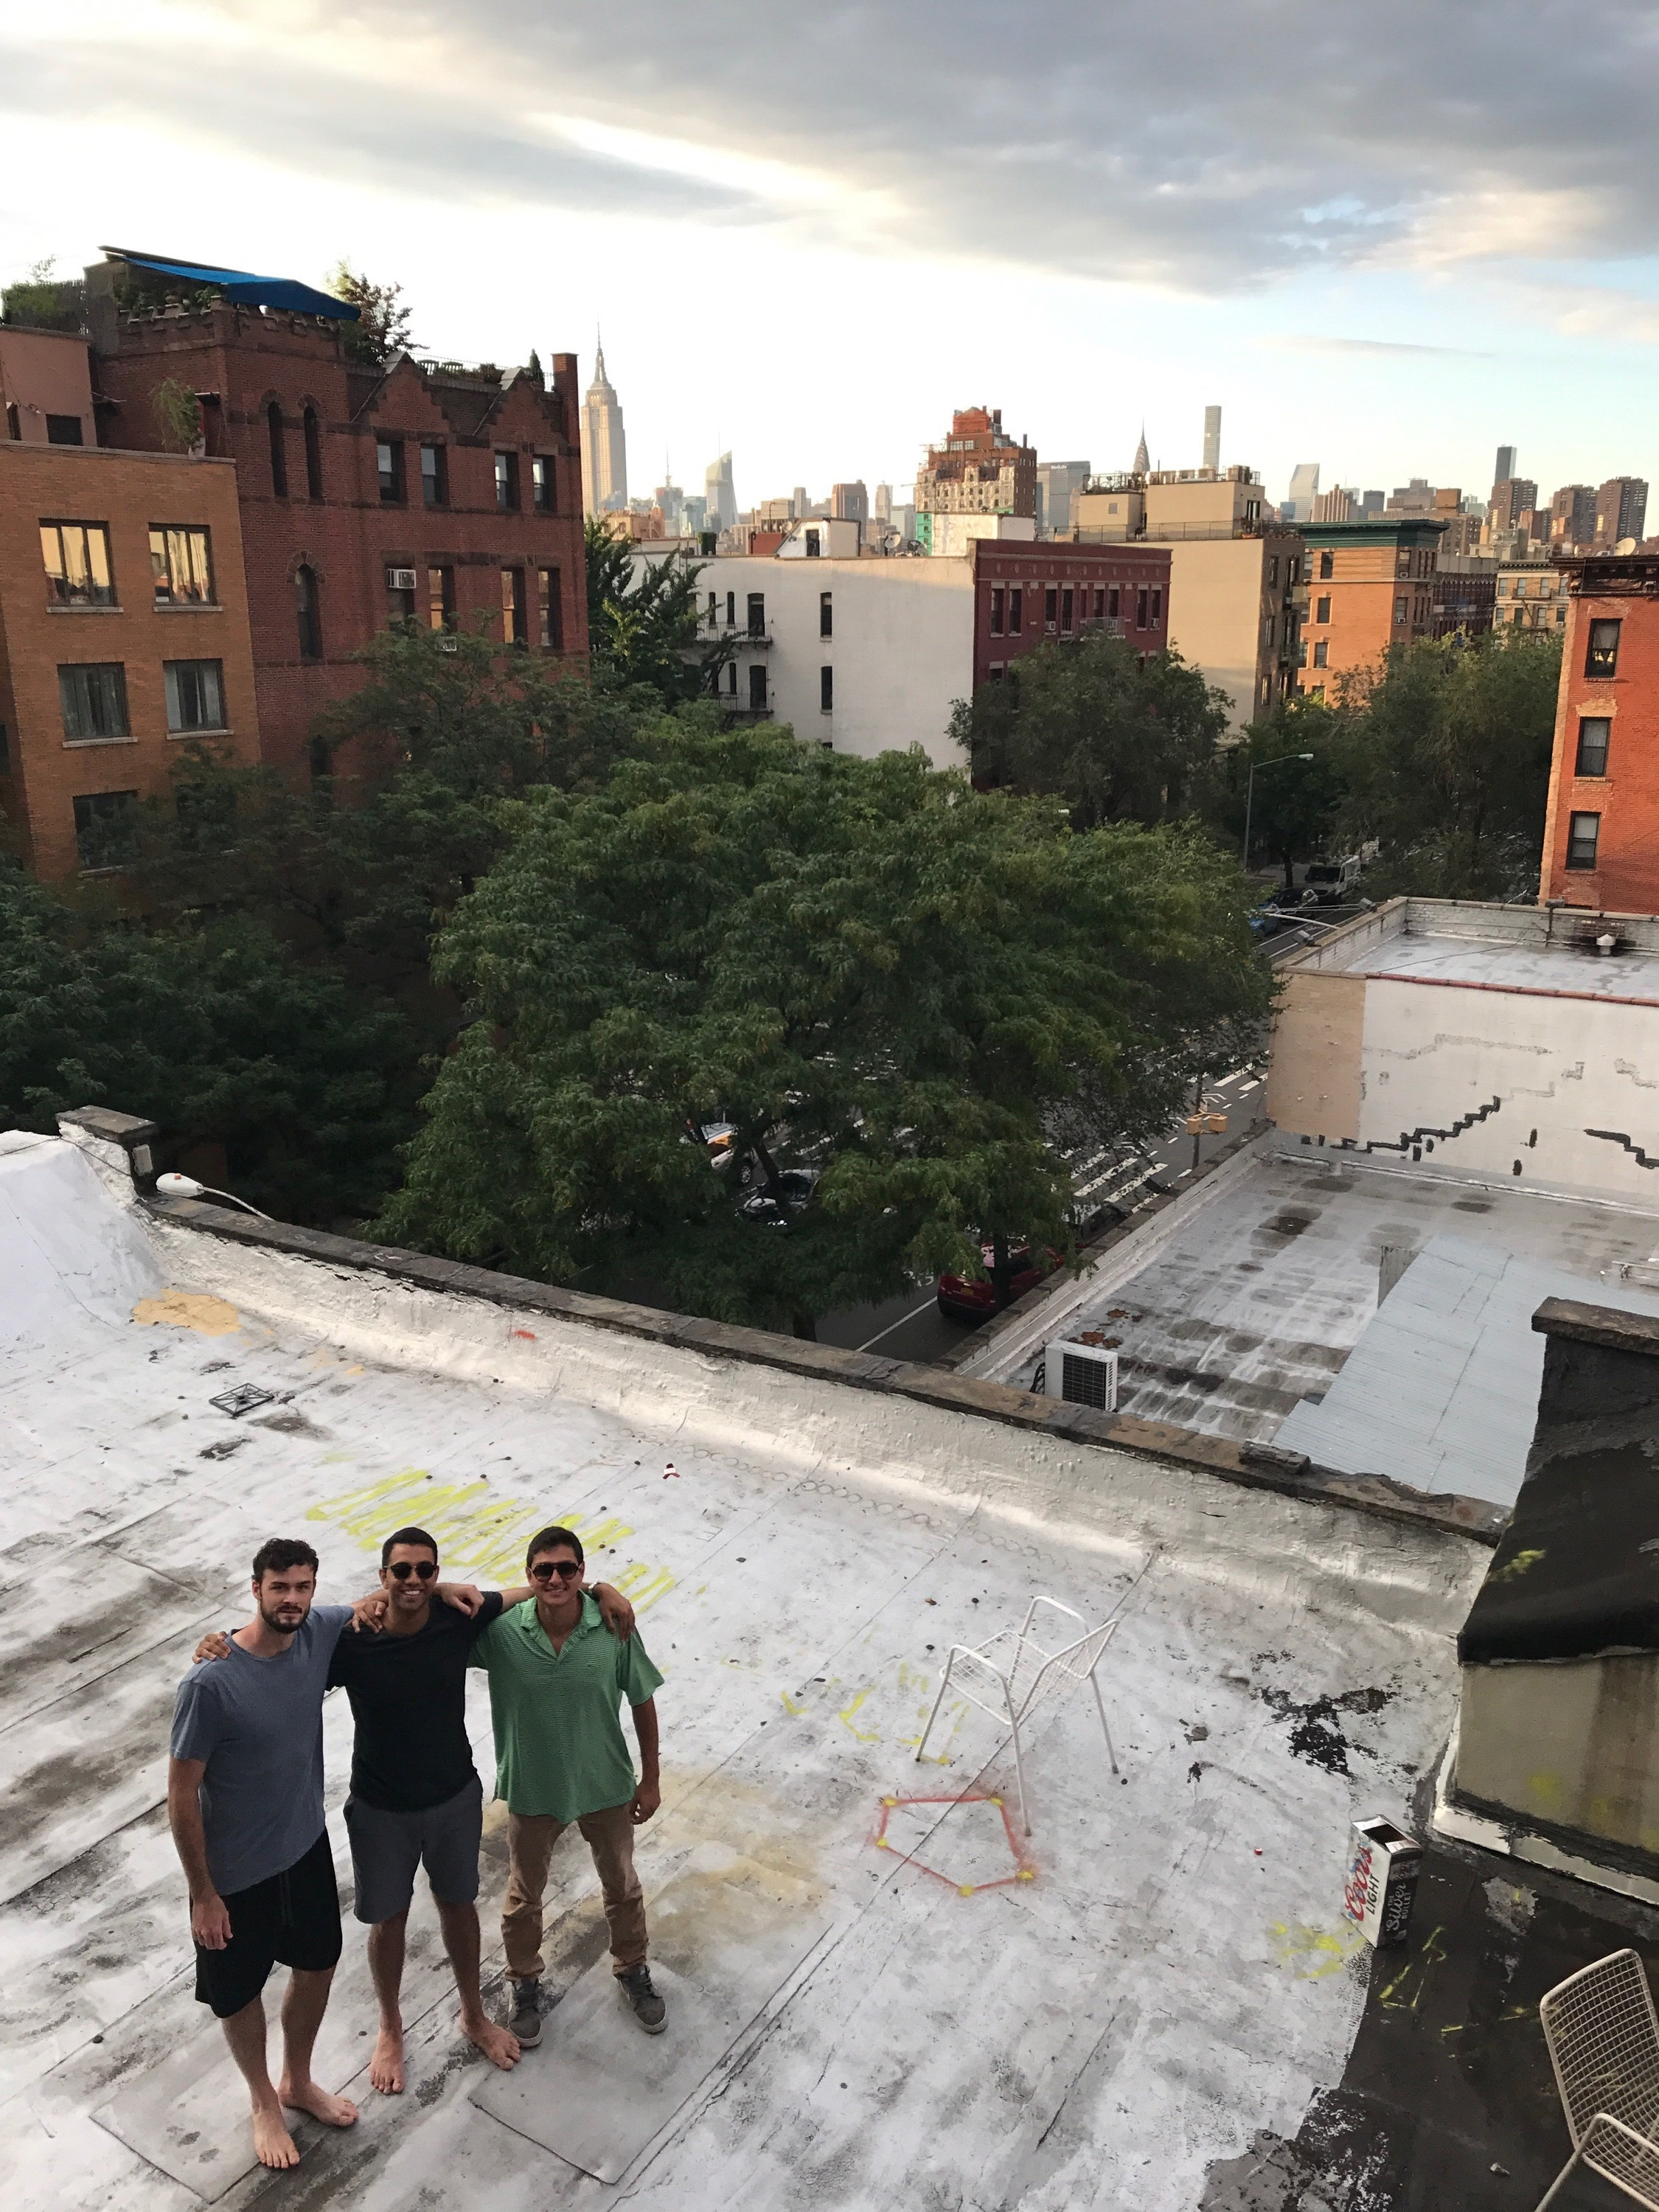 Our avenue C apartment had a fire escape accessible rooftop.